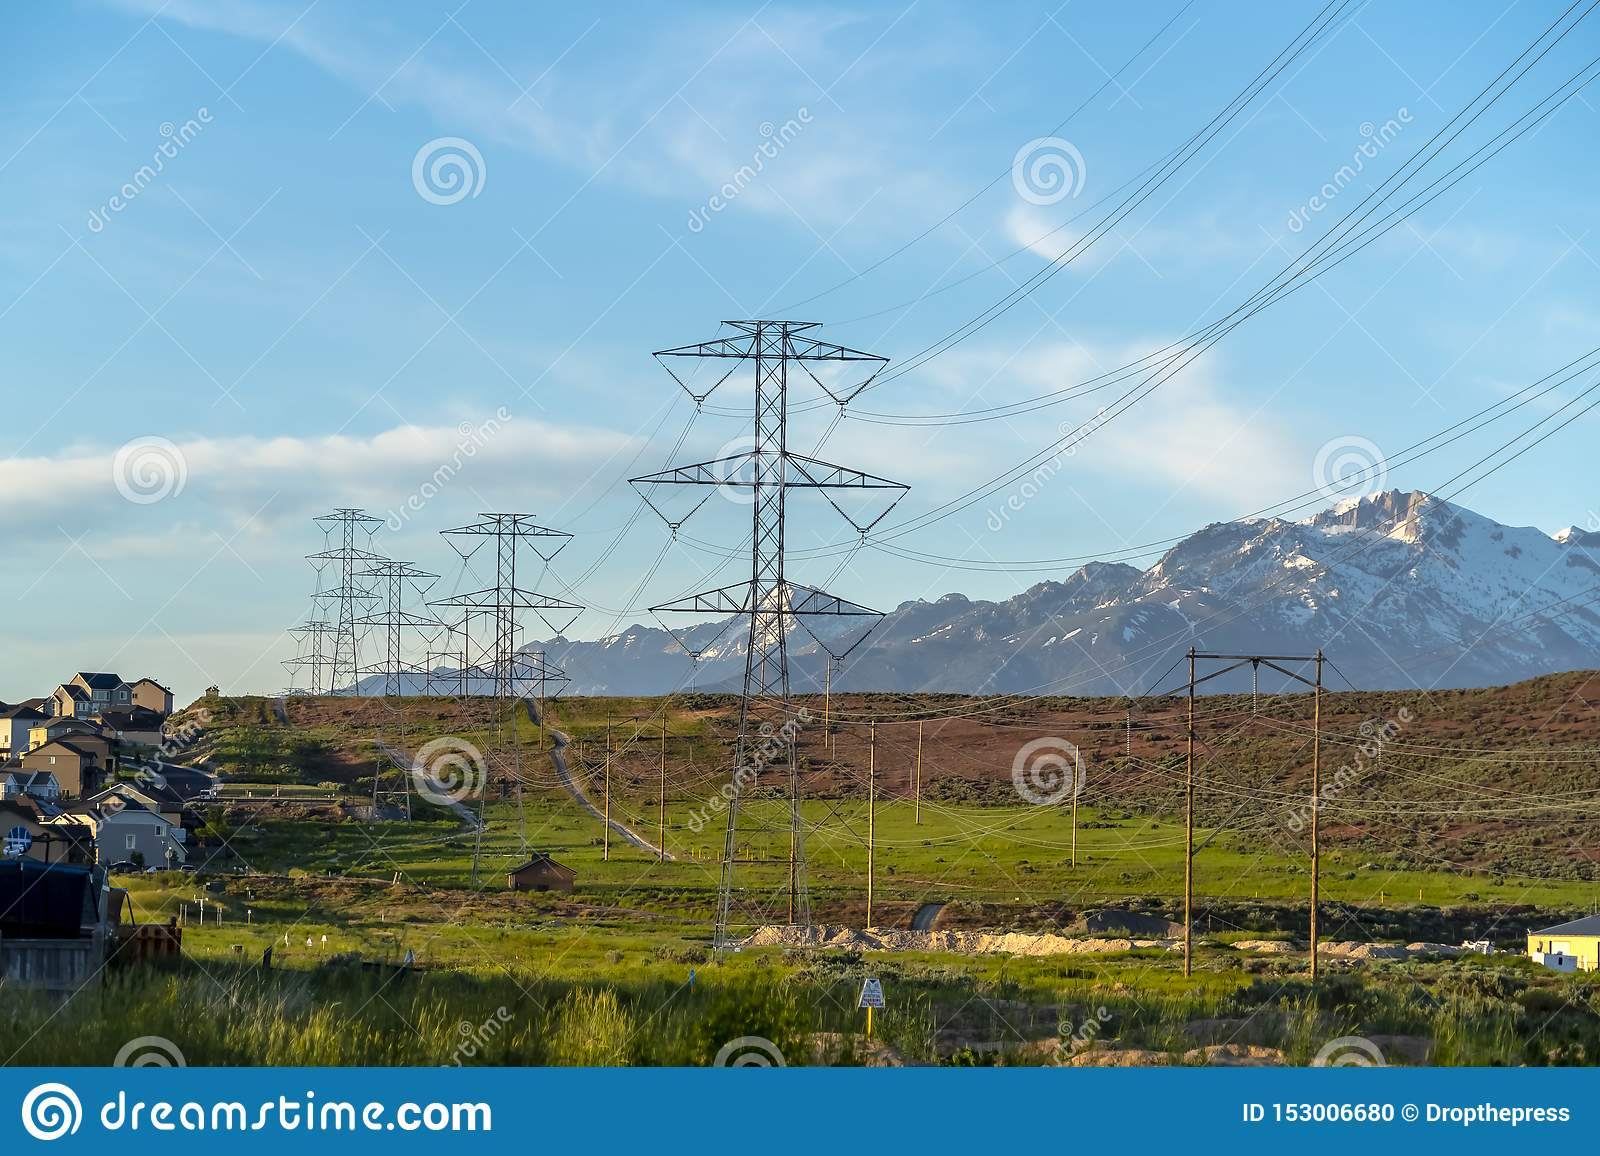 Power lines towering over neighborhood and roads in the valley on a sunny day